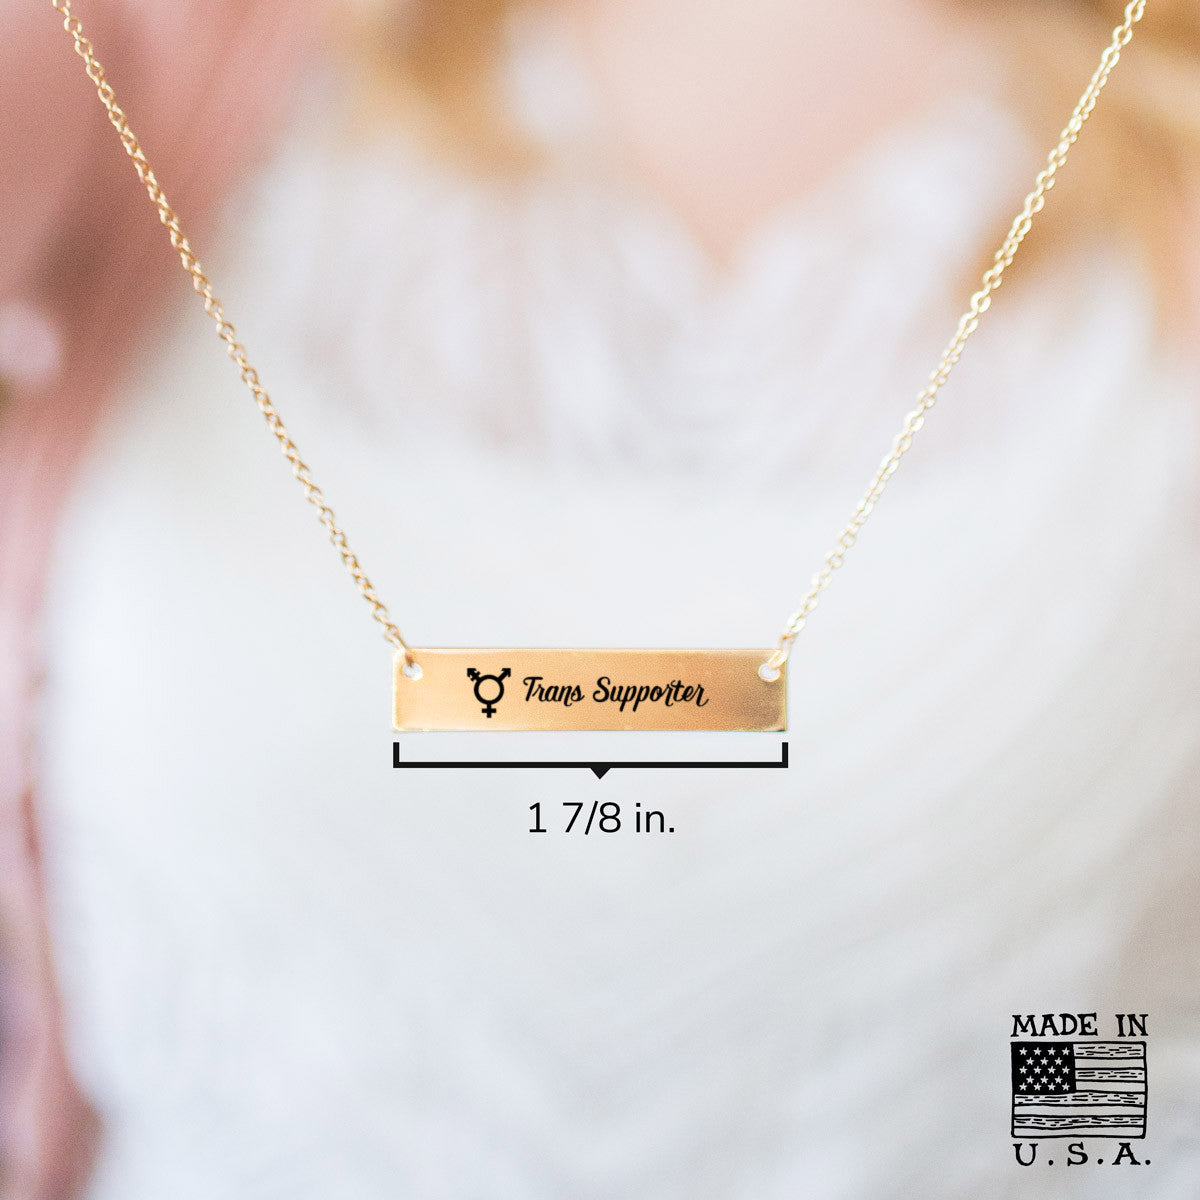 Trans Supporter Gold / Silver Bar Necklace